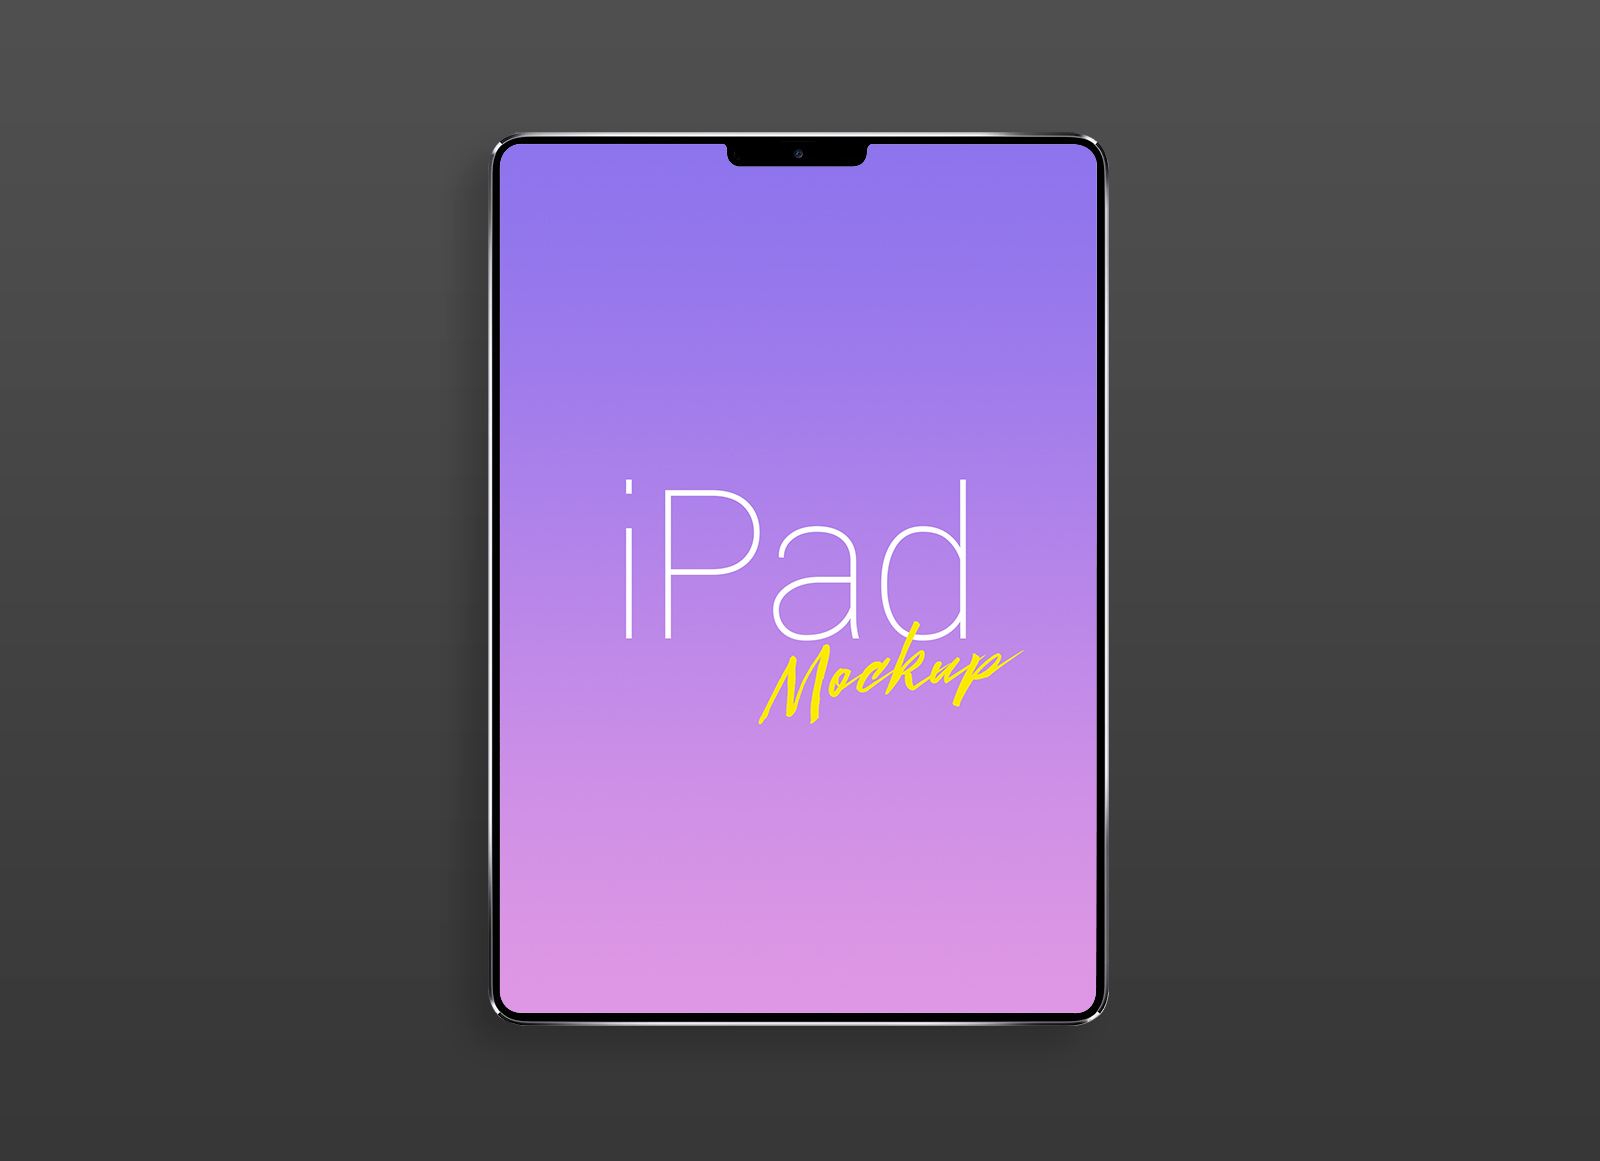 Free Apple iPad Pro (2018) Mockup PSD